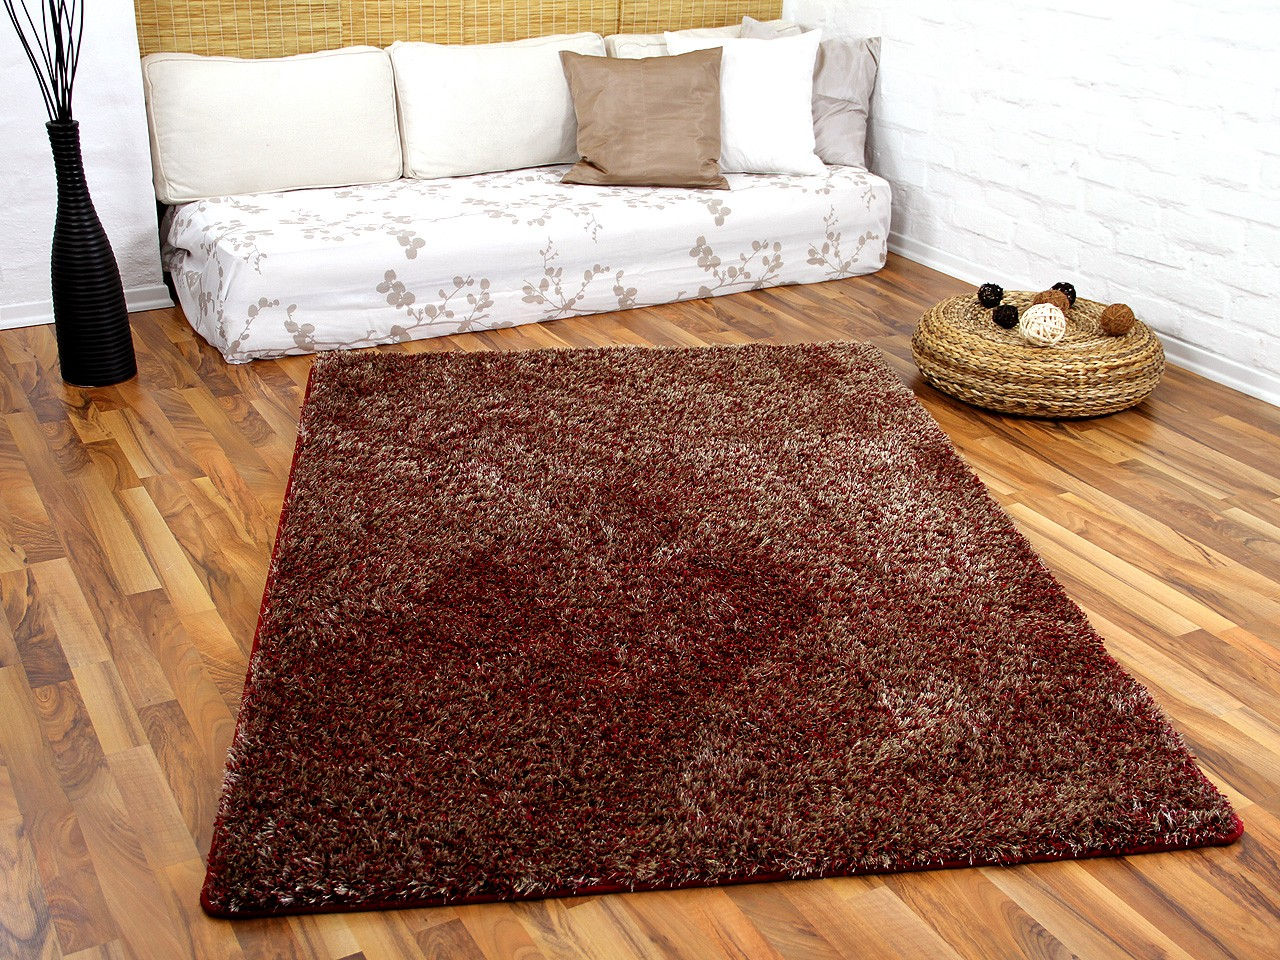 Hochflor Teppich Luxus Shaggy Hochflor Shaggy Teppich Luxus Feeling Mix Rot Gold